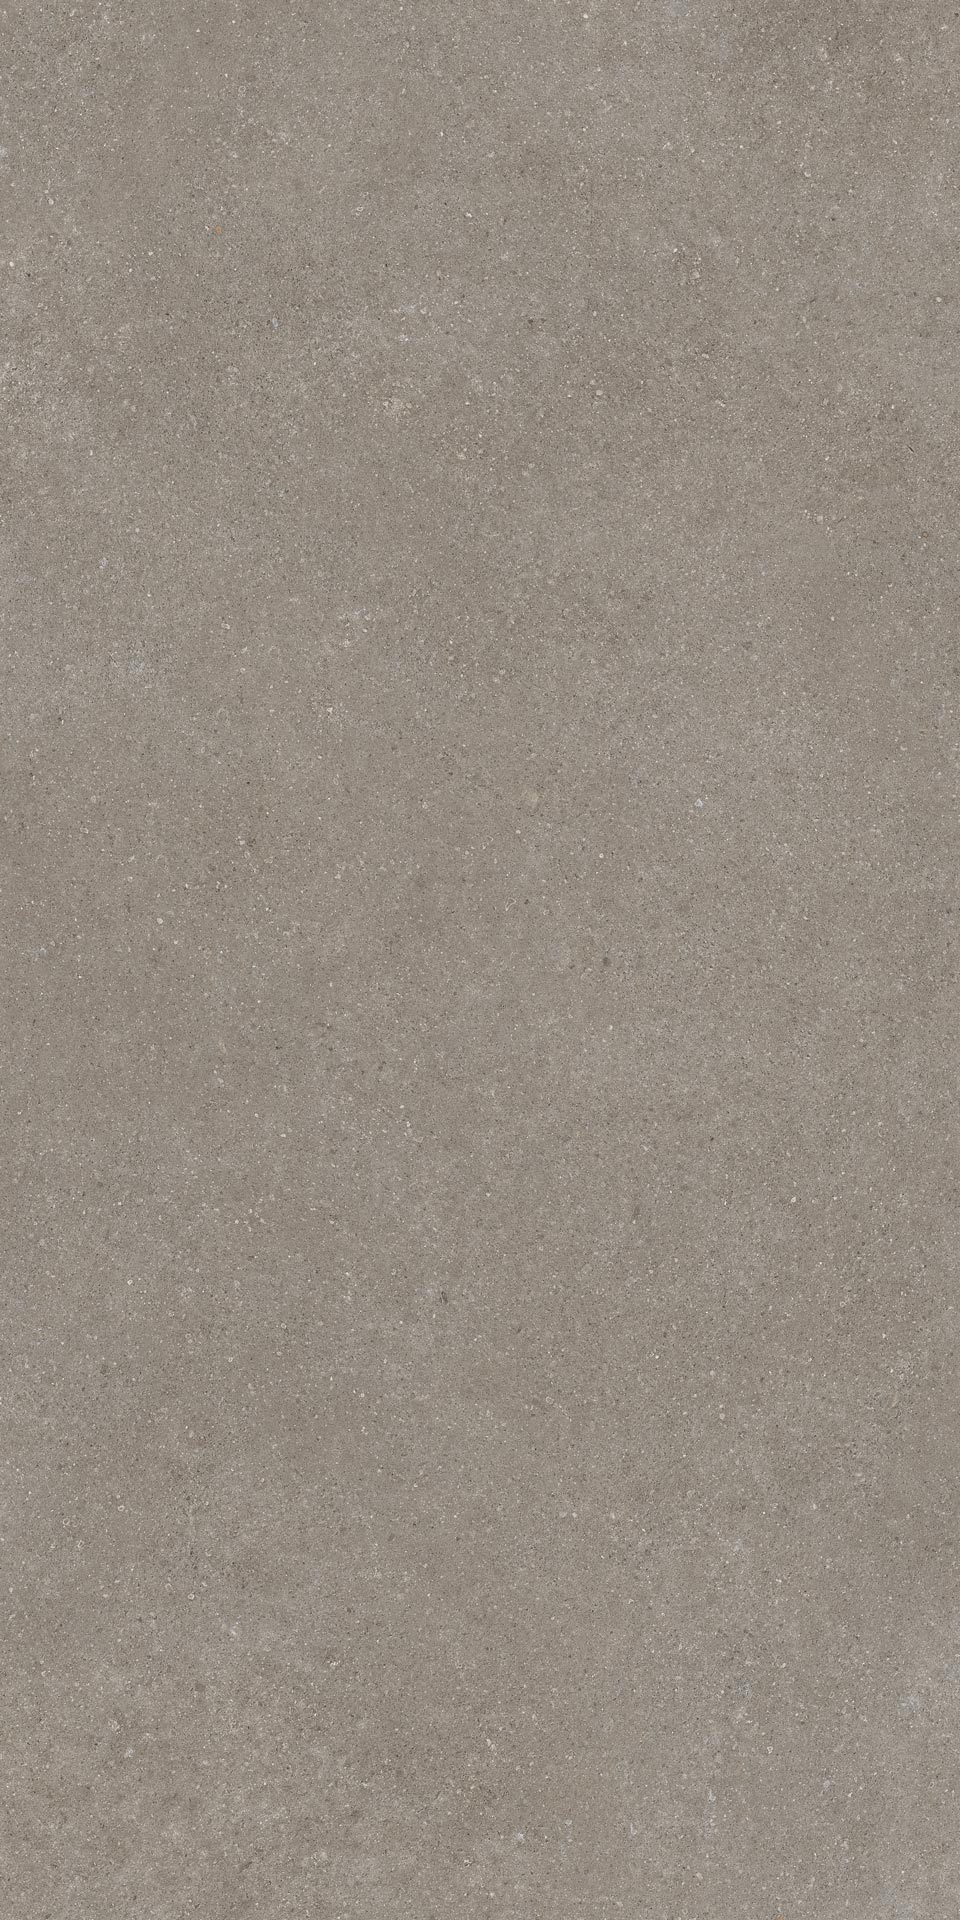 atlas-plan-kone-grey-porcelain-slabs-stone-effect-matte-finish